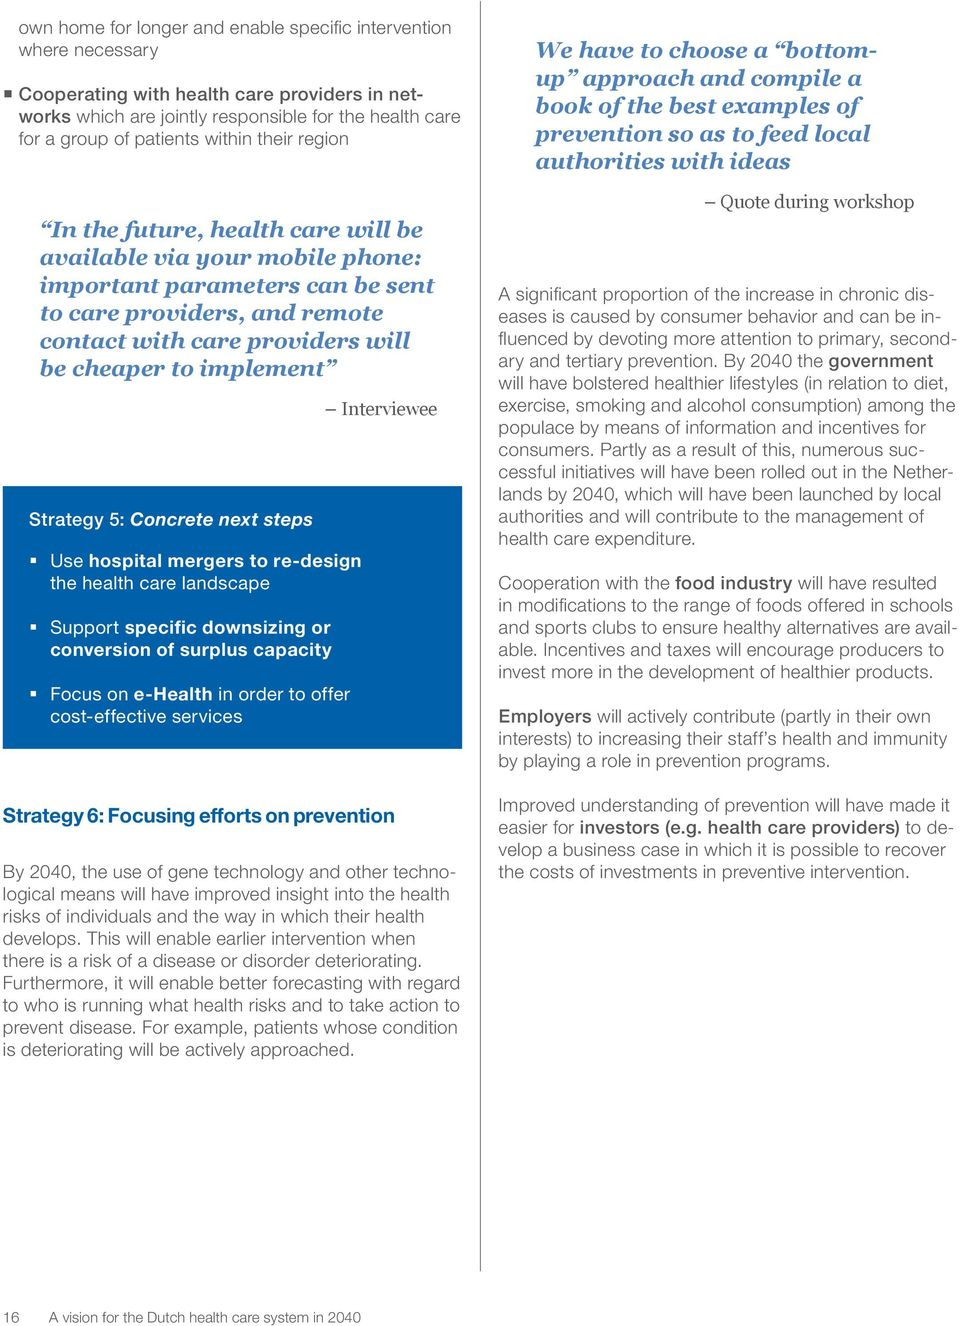 implement Strategy 5: Concrete next steps Use hospital mergers to re-design the health care landscape Support specific downsizing or conversion of surplus capacity Focus on e-health in order to offer